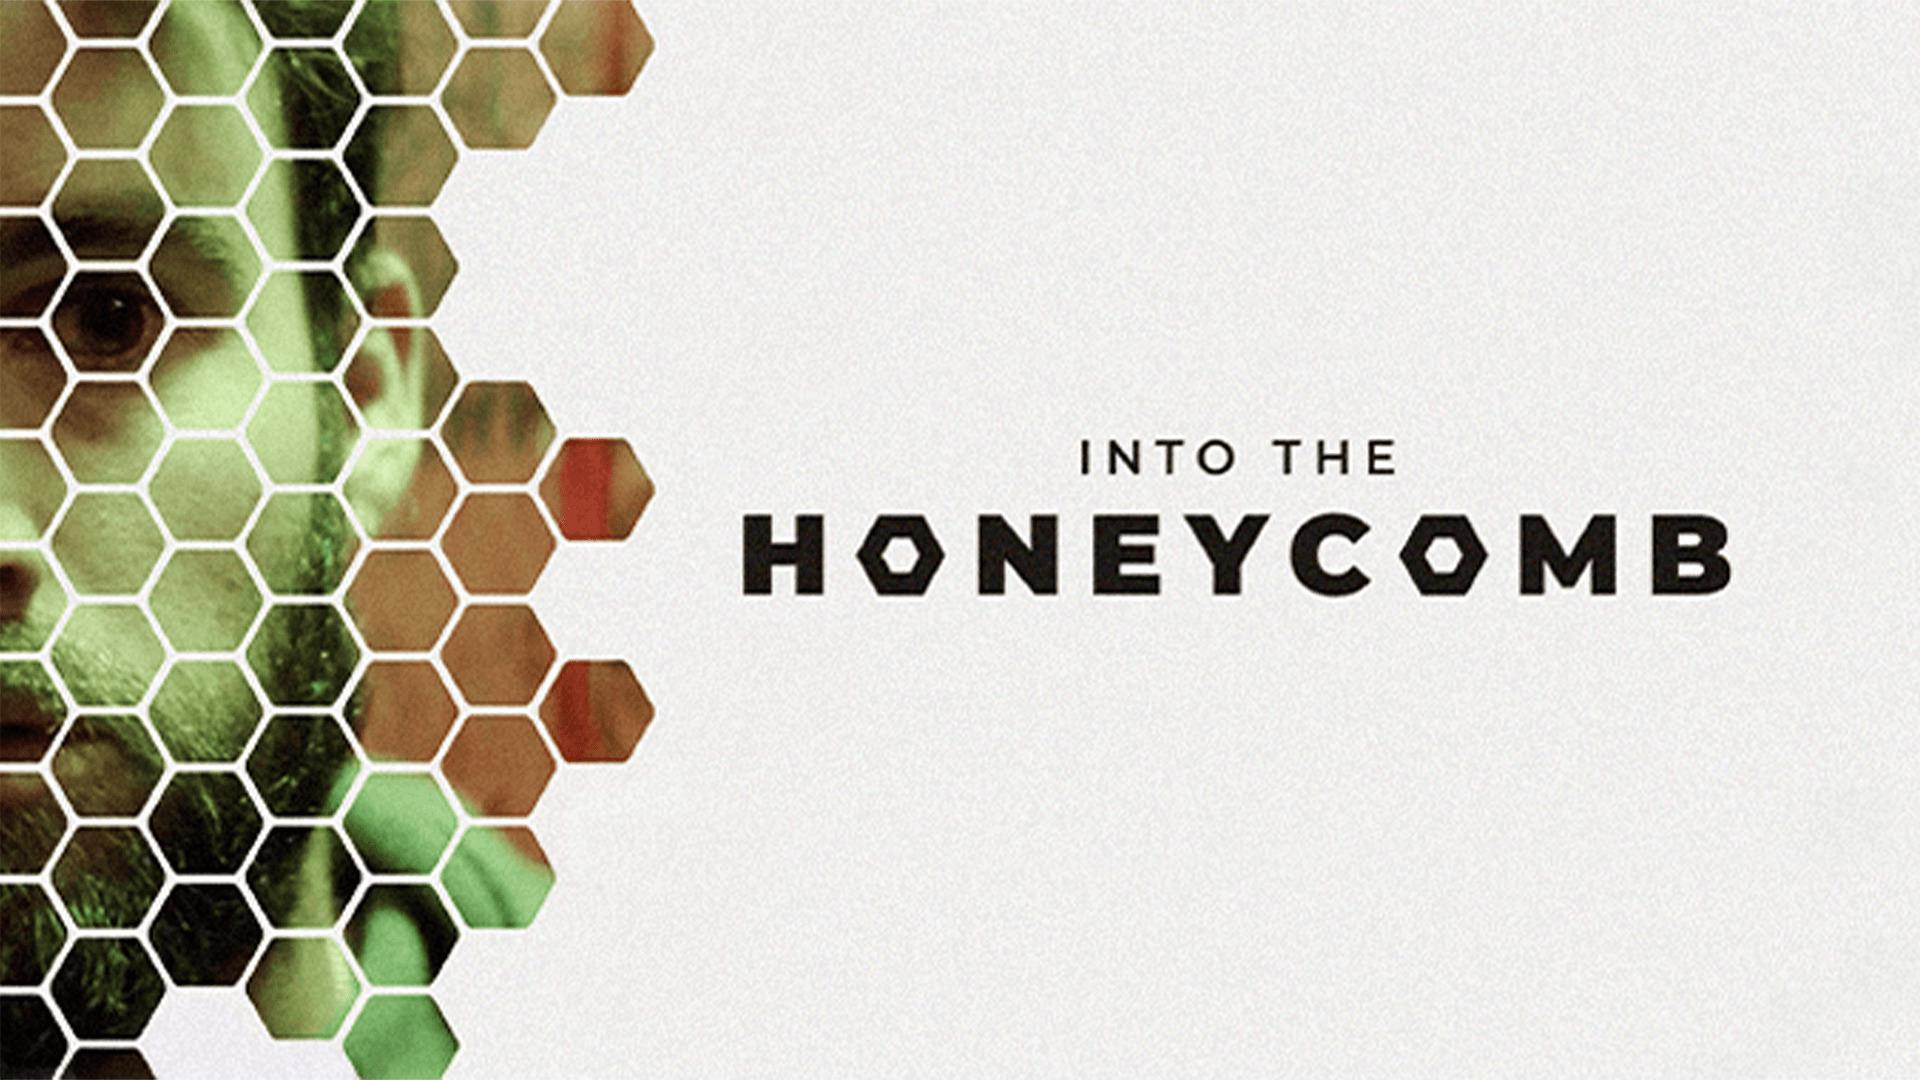 Into the Honeycomb